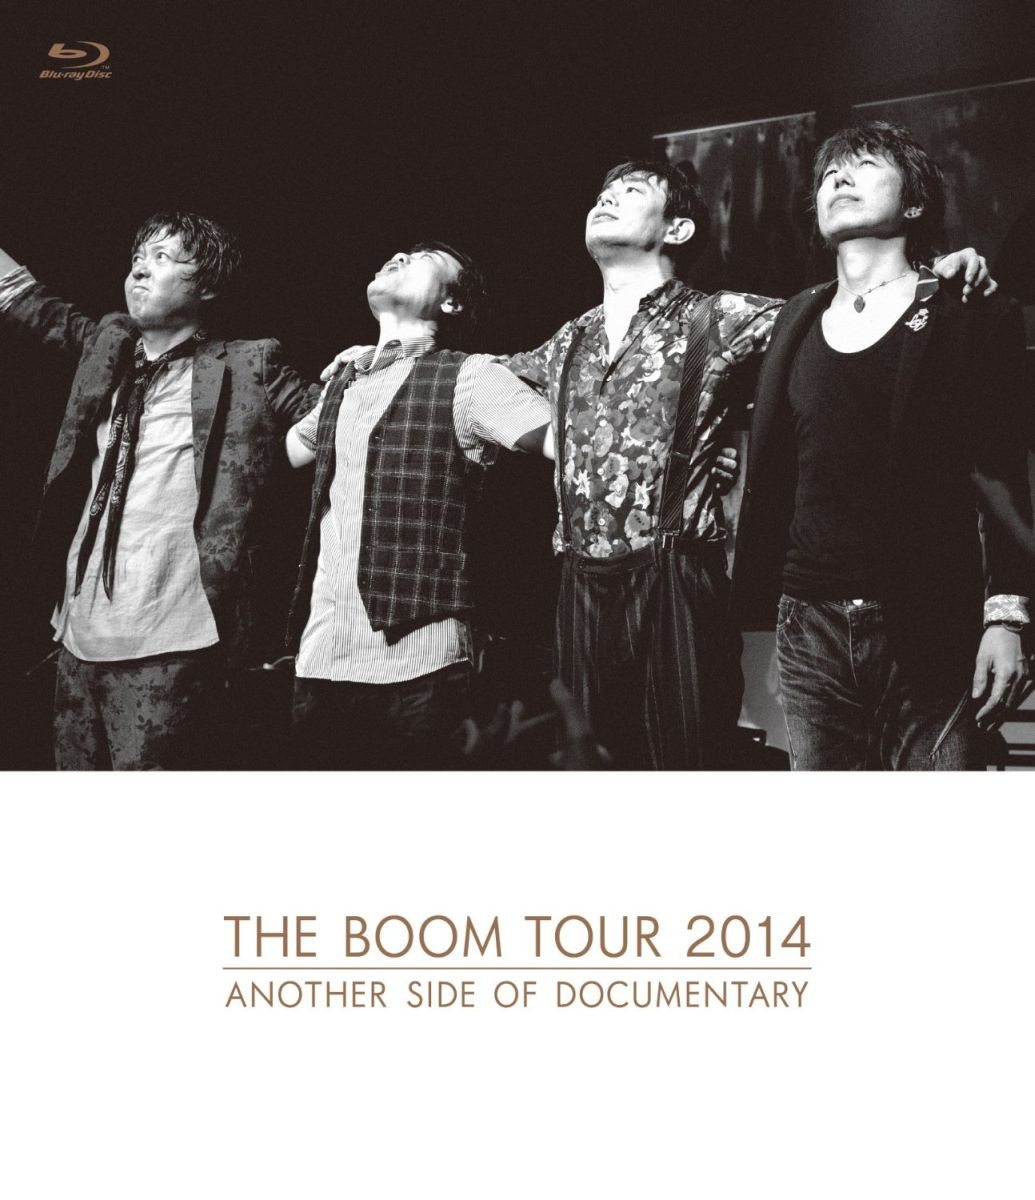 THE BOOM TOUR 2014 ANOTHER SIDE OF DOCUMENTARY【Blu-ray】画像